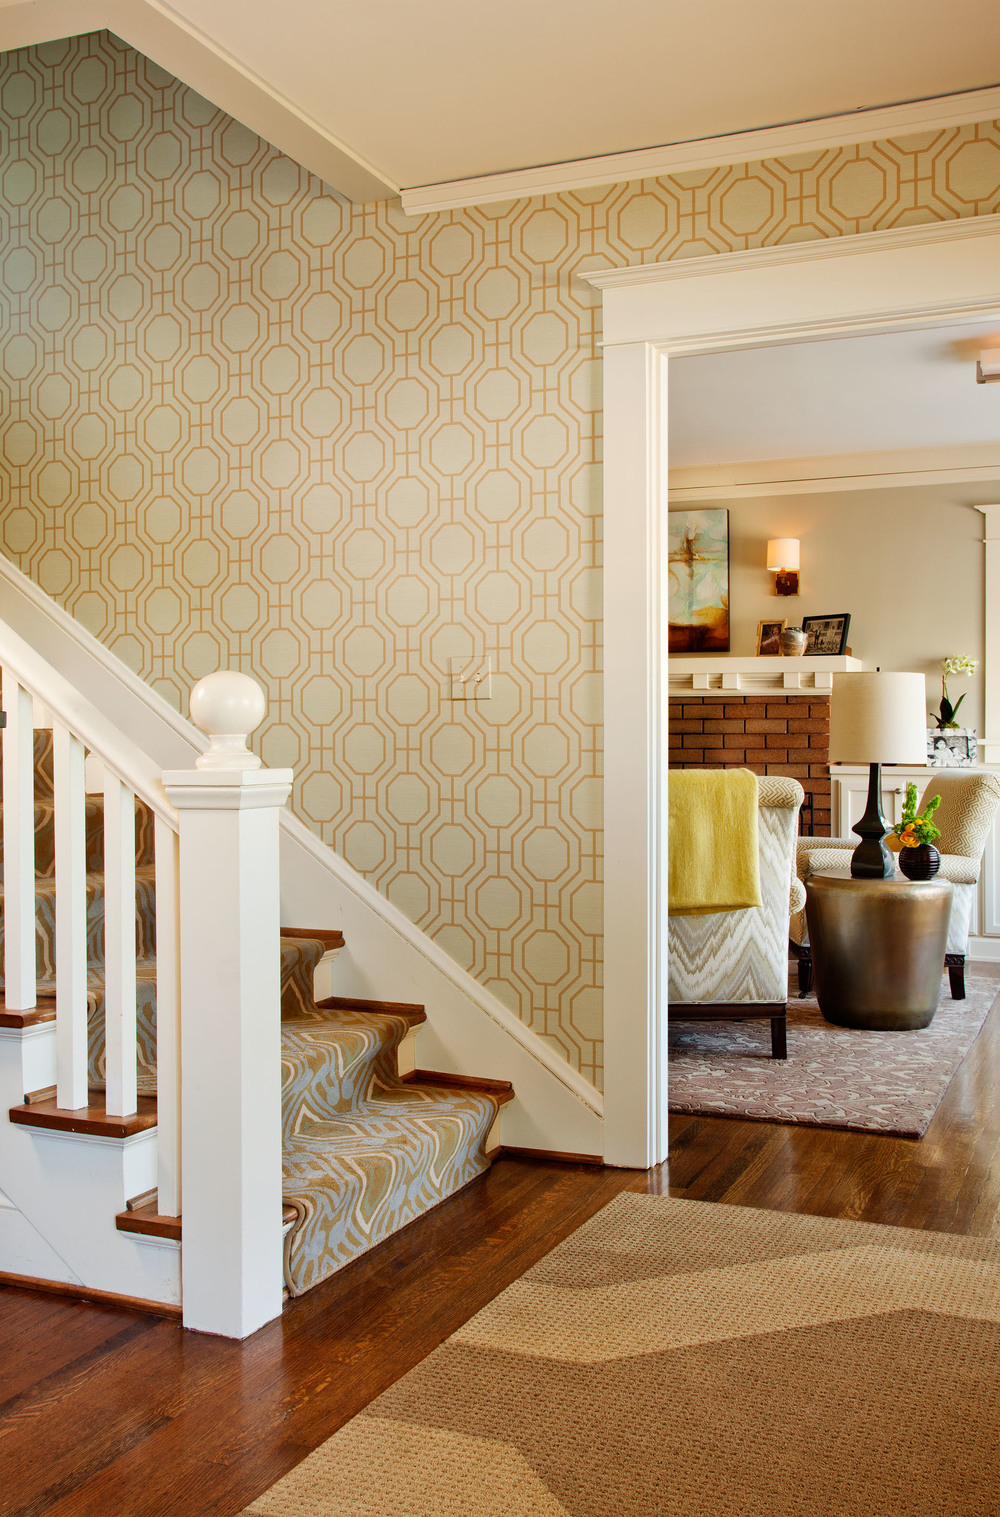 ReIntroduction To Wallpaper Fabulous Interior Design That Uses